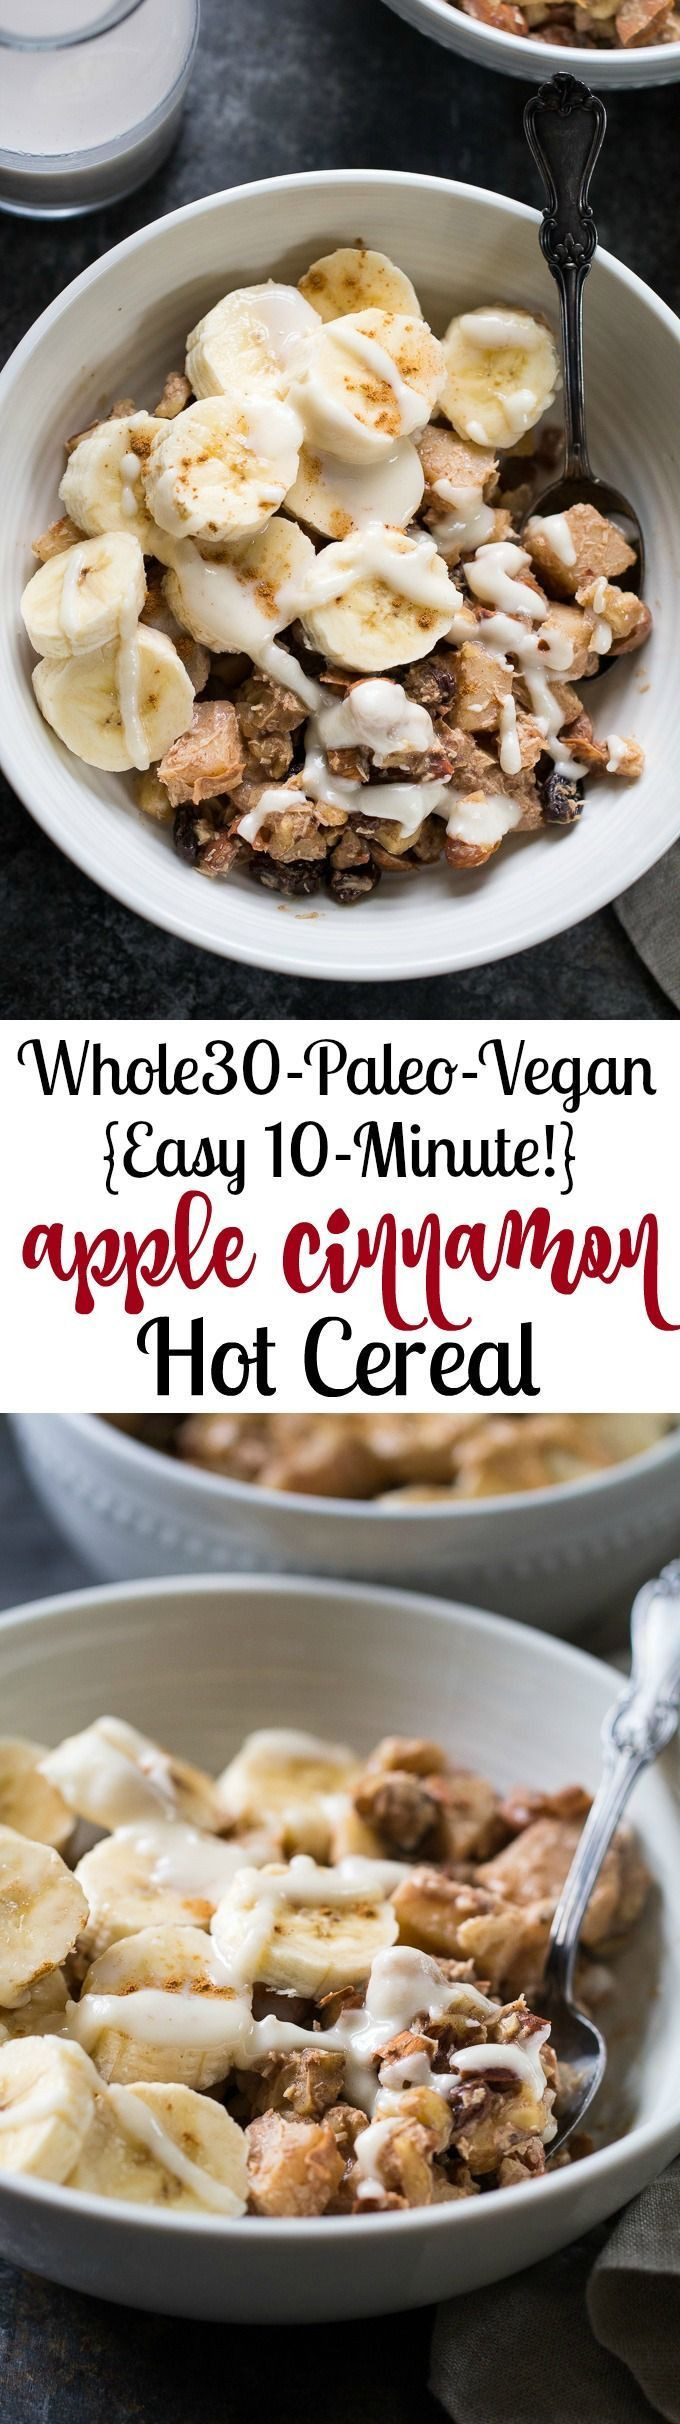 Healthy Paleo Snacks  The 25 best Afternoon snacks ideas on Pinterest